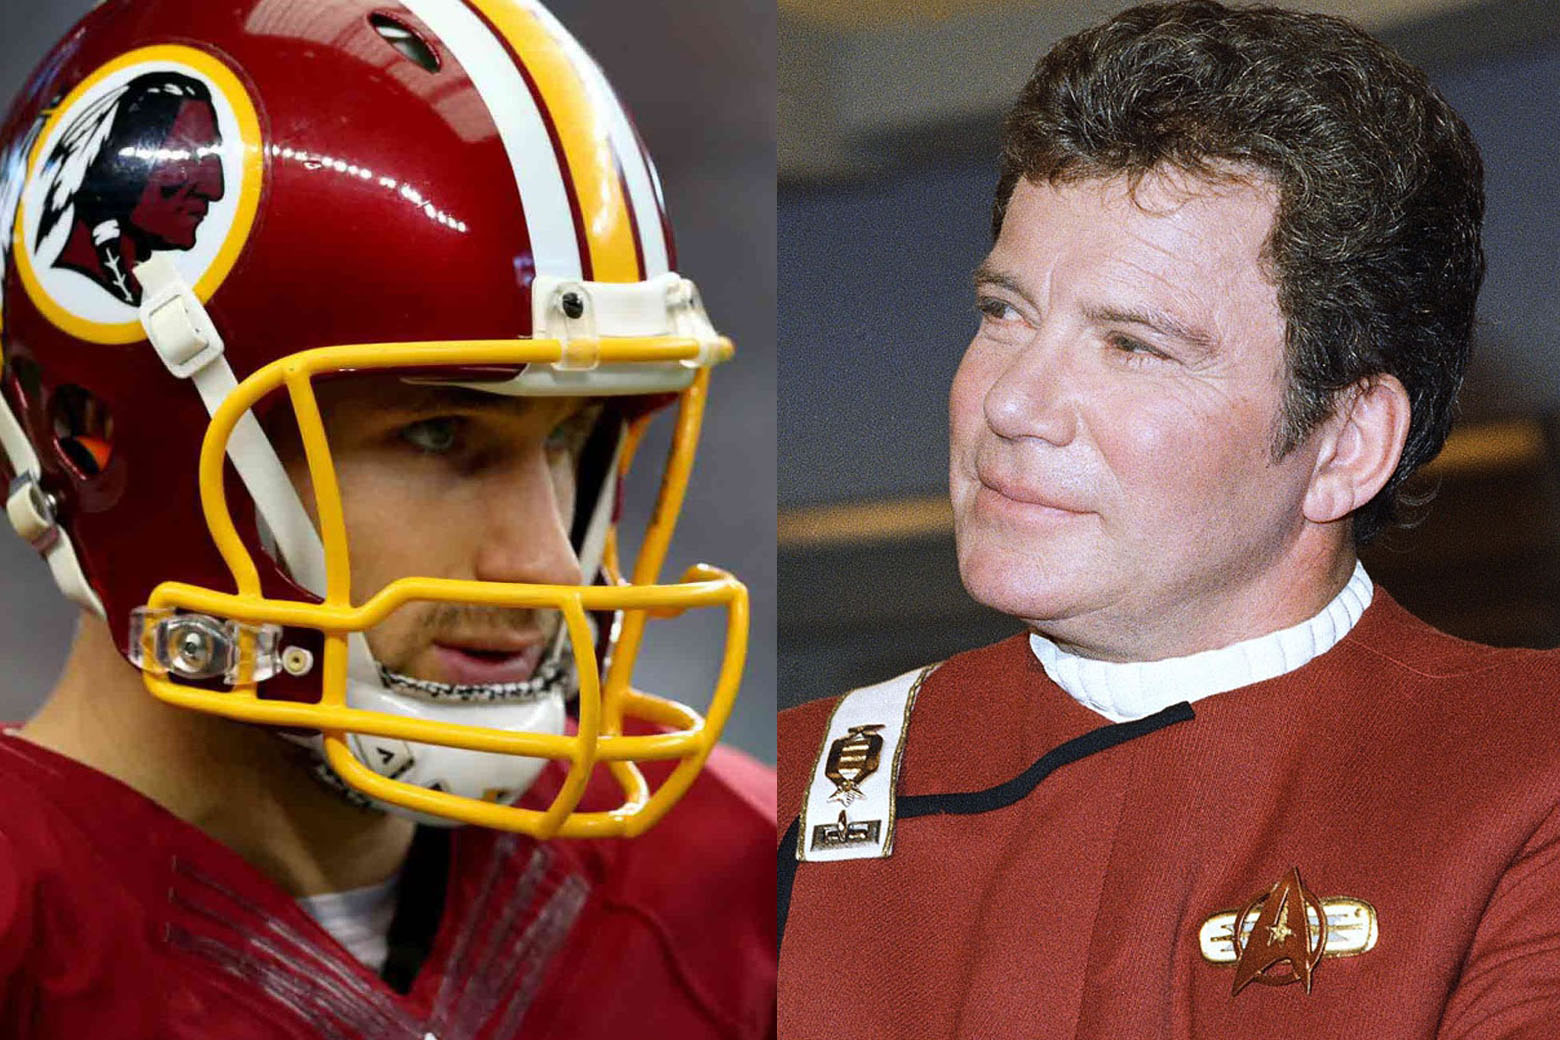 William Shatner offers advice to D.C.'s Captain Kirk (Cousins)